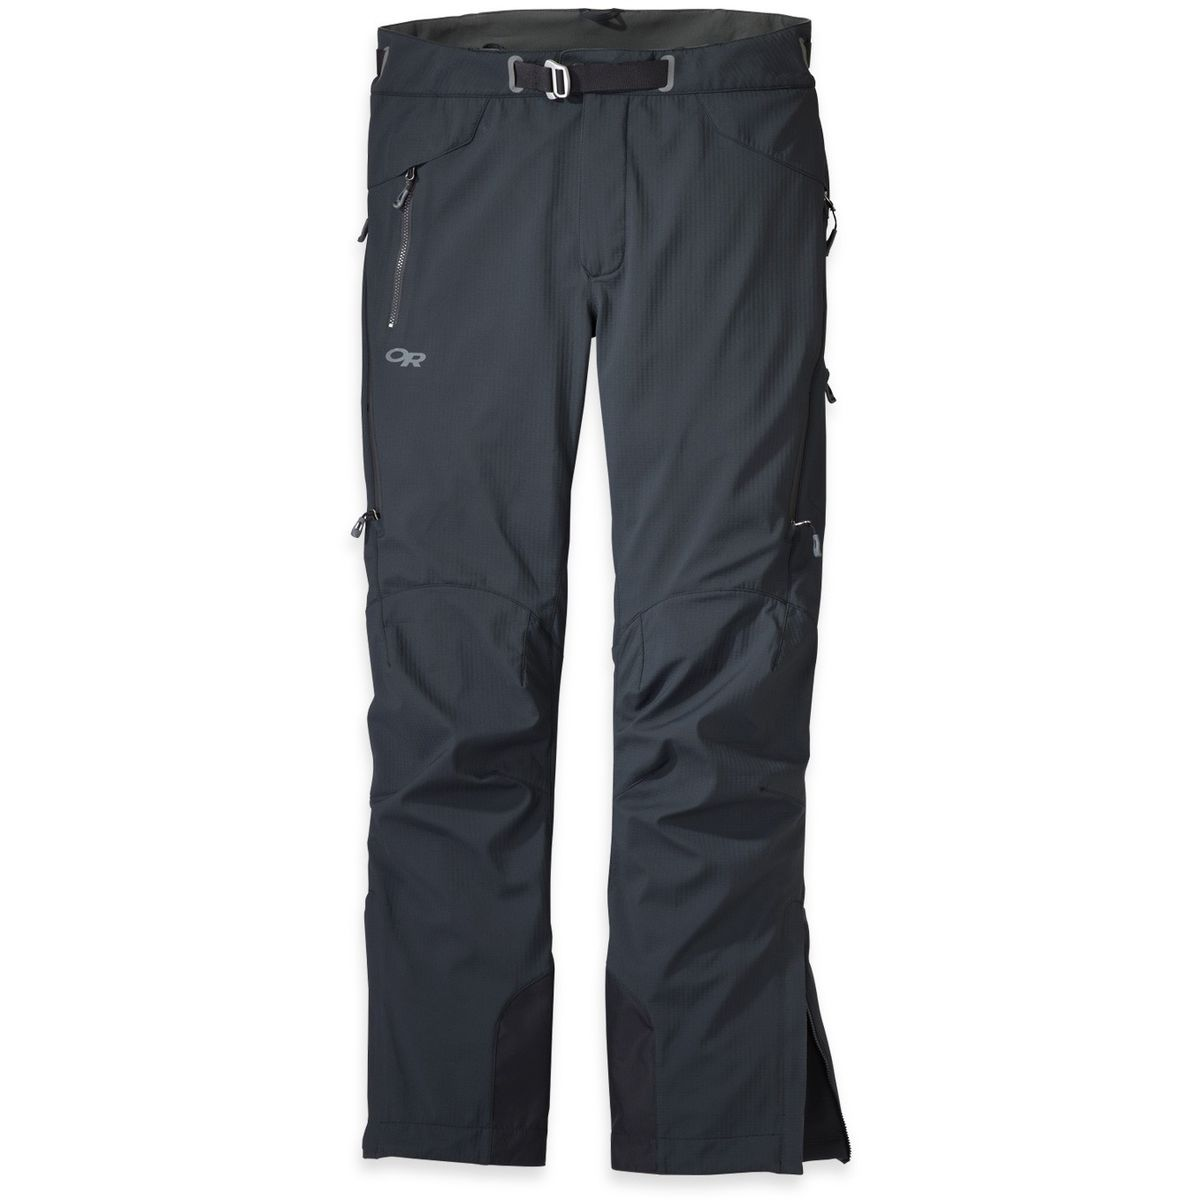 Outdoor Research Iceline Softshell Pant - Men